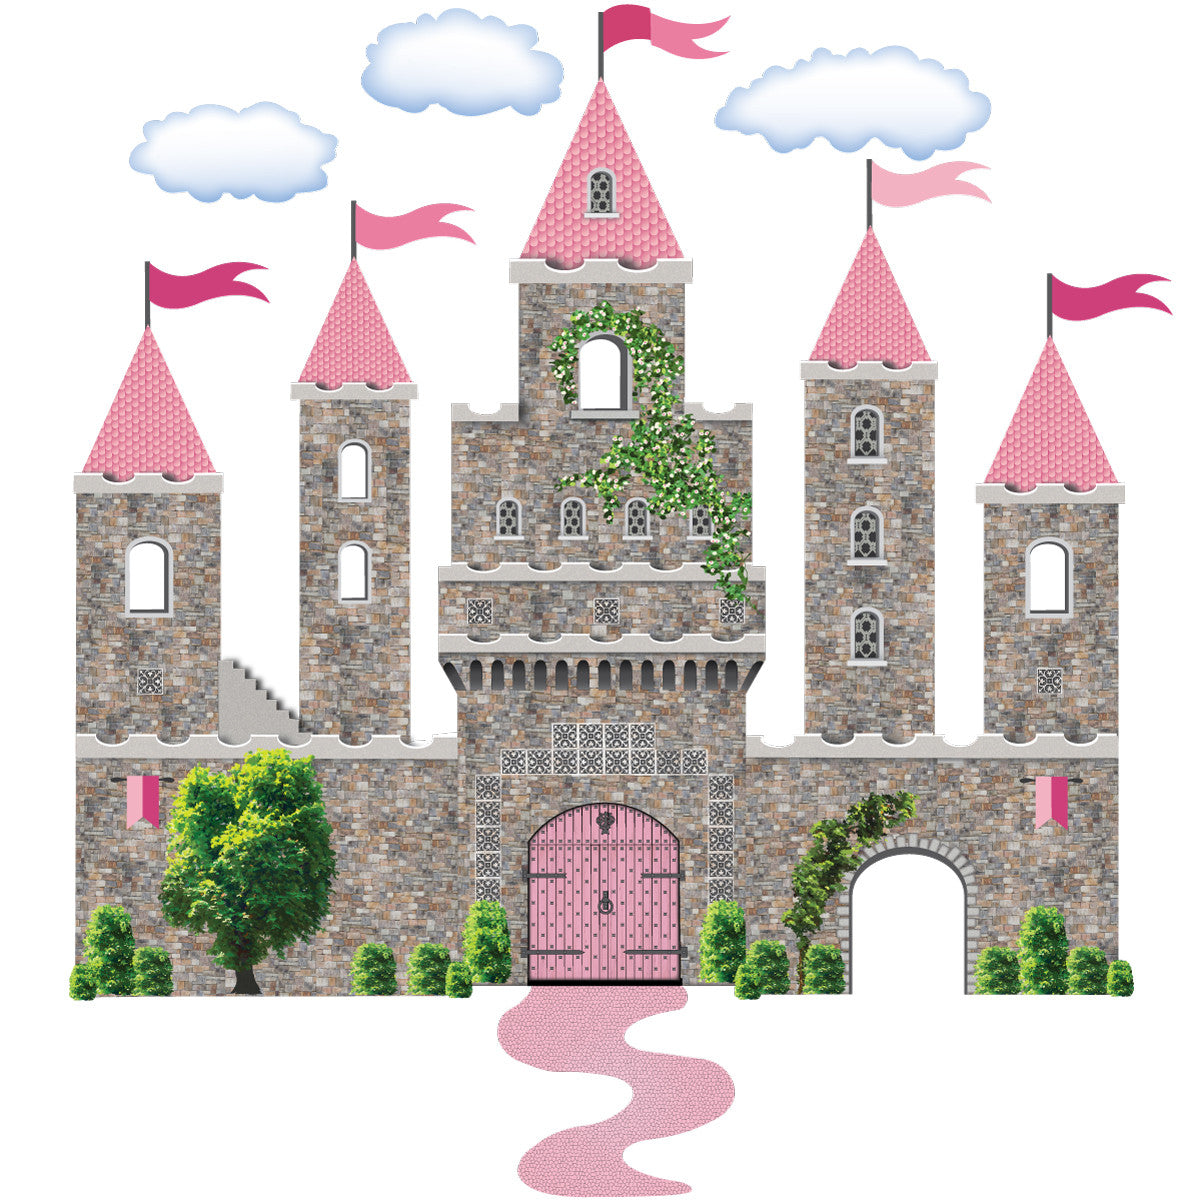 Pink Fairytale Princess Stone Castle Wall Decals With Turrets And Flags